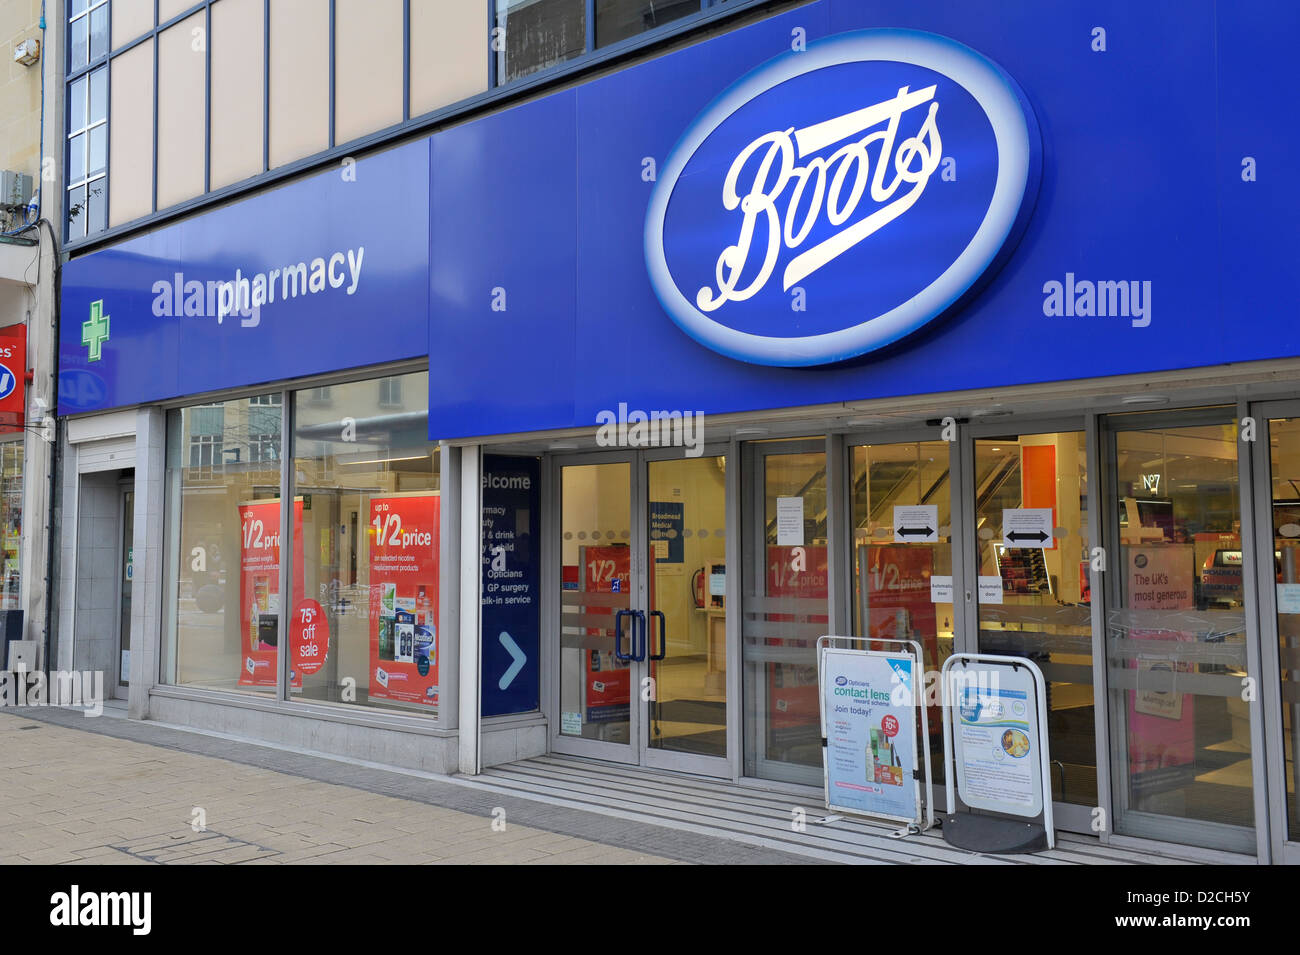 Boots Retail shop or unit on UK street Stock Photo